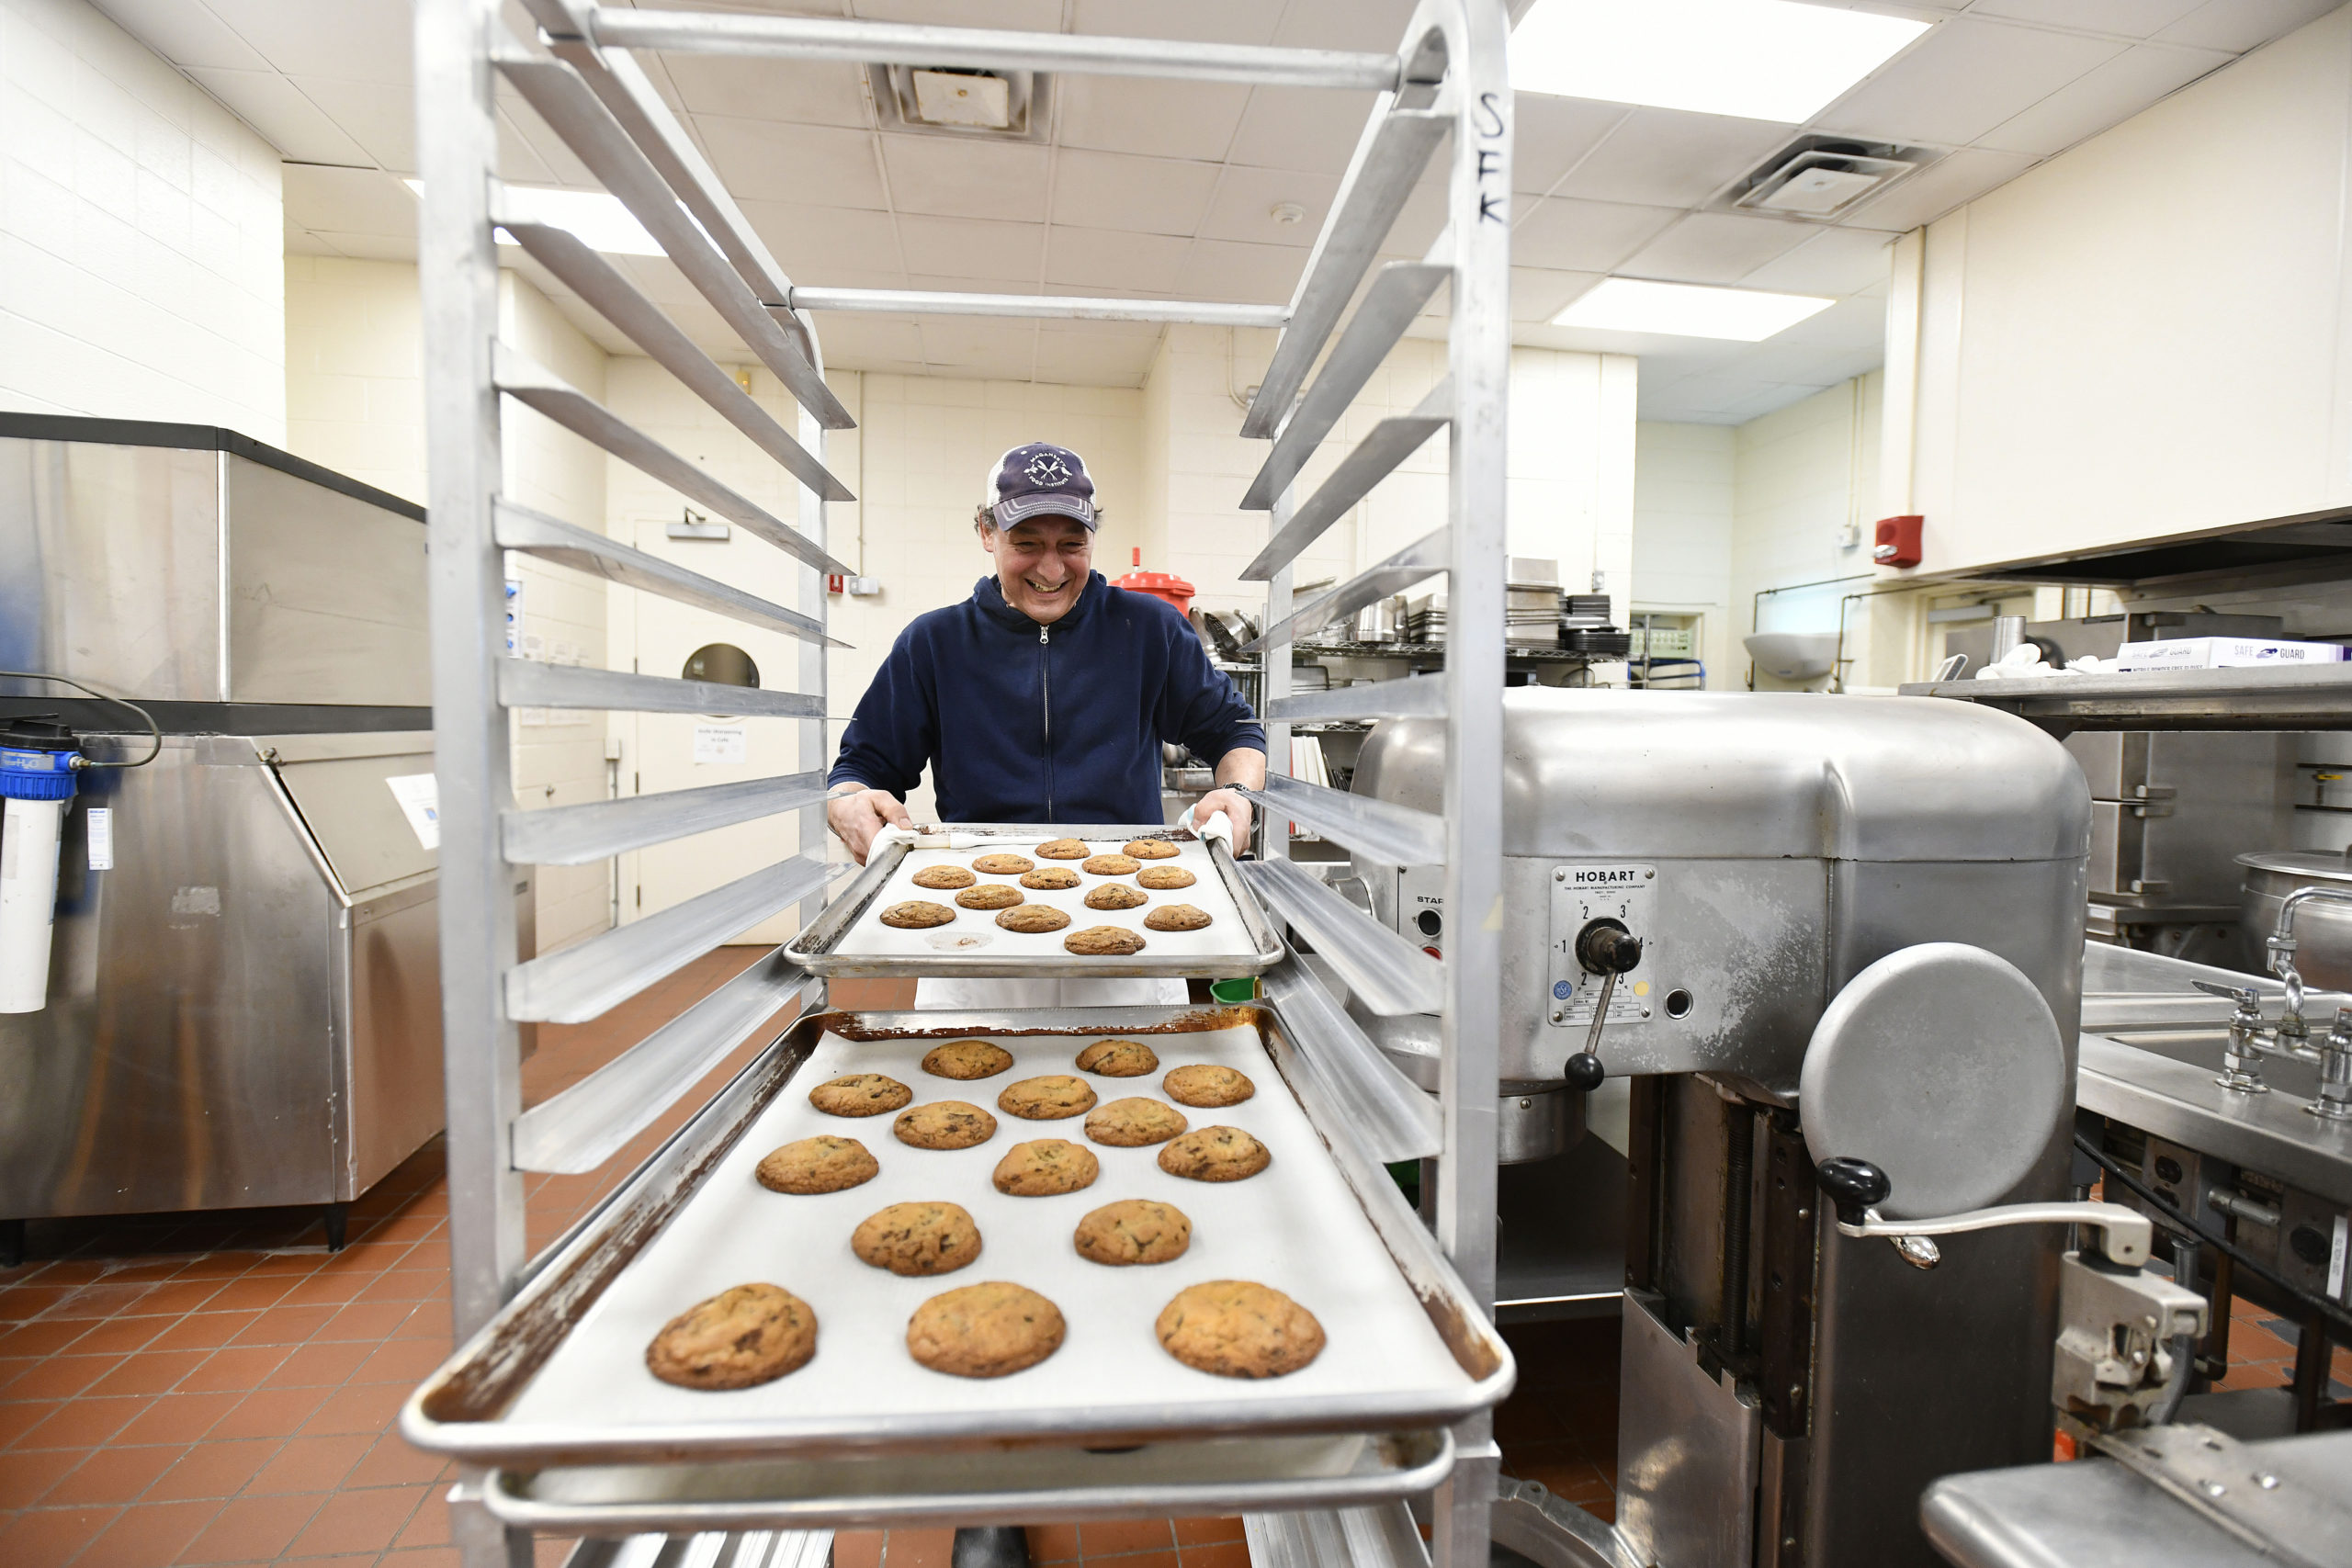 Robert Curreri of Robert's Bakestand in the kitchen at the East End Food hub.    DANA SHAW